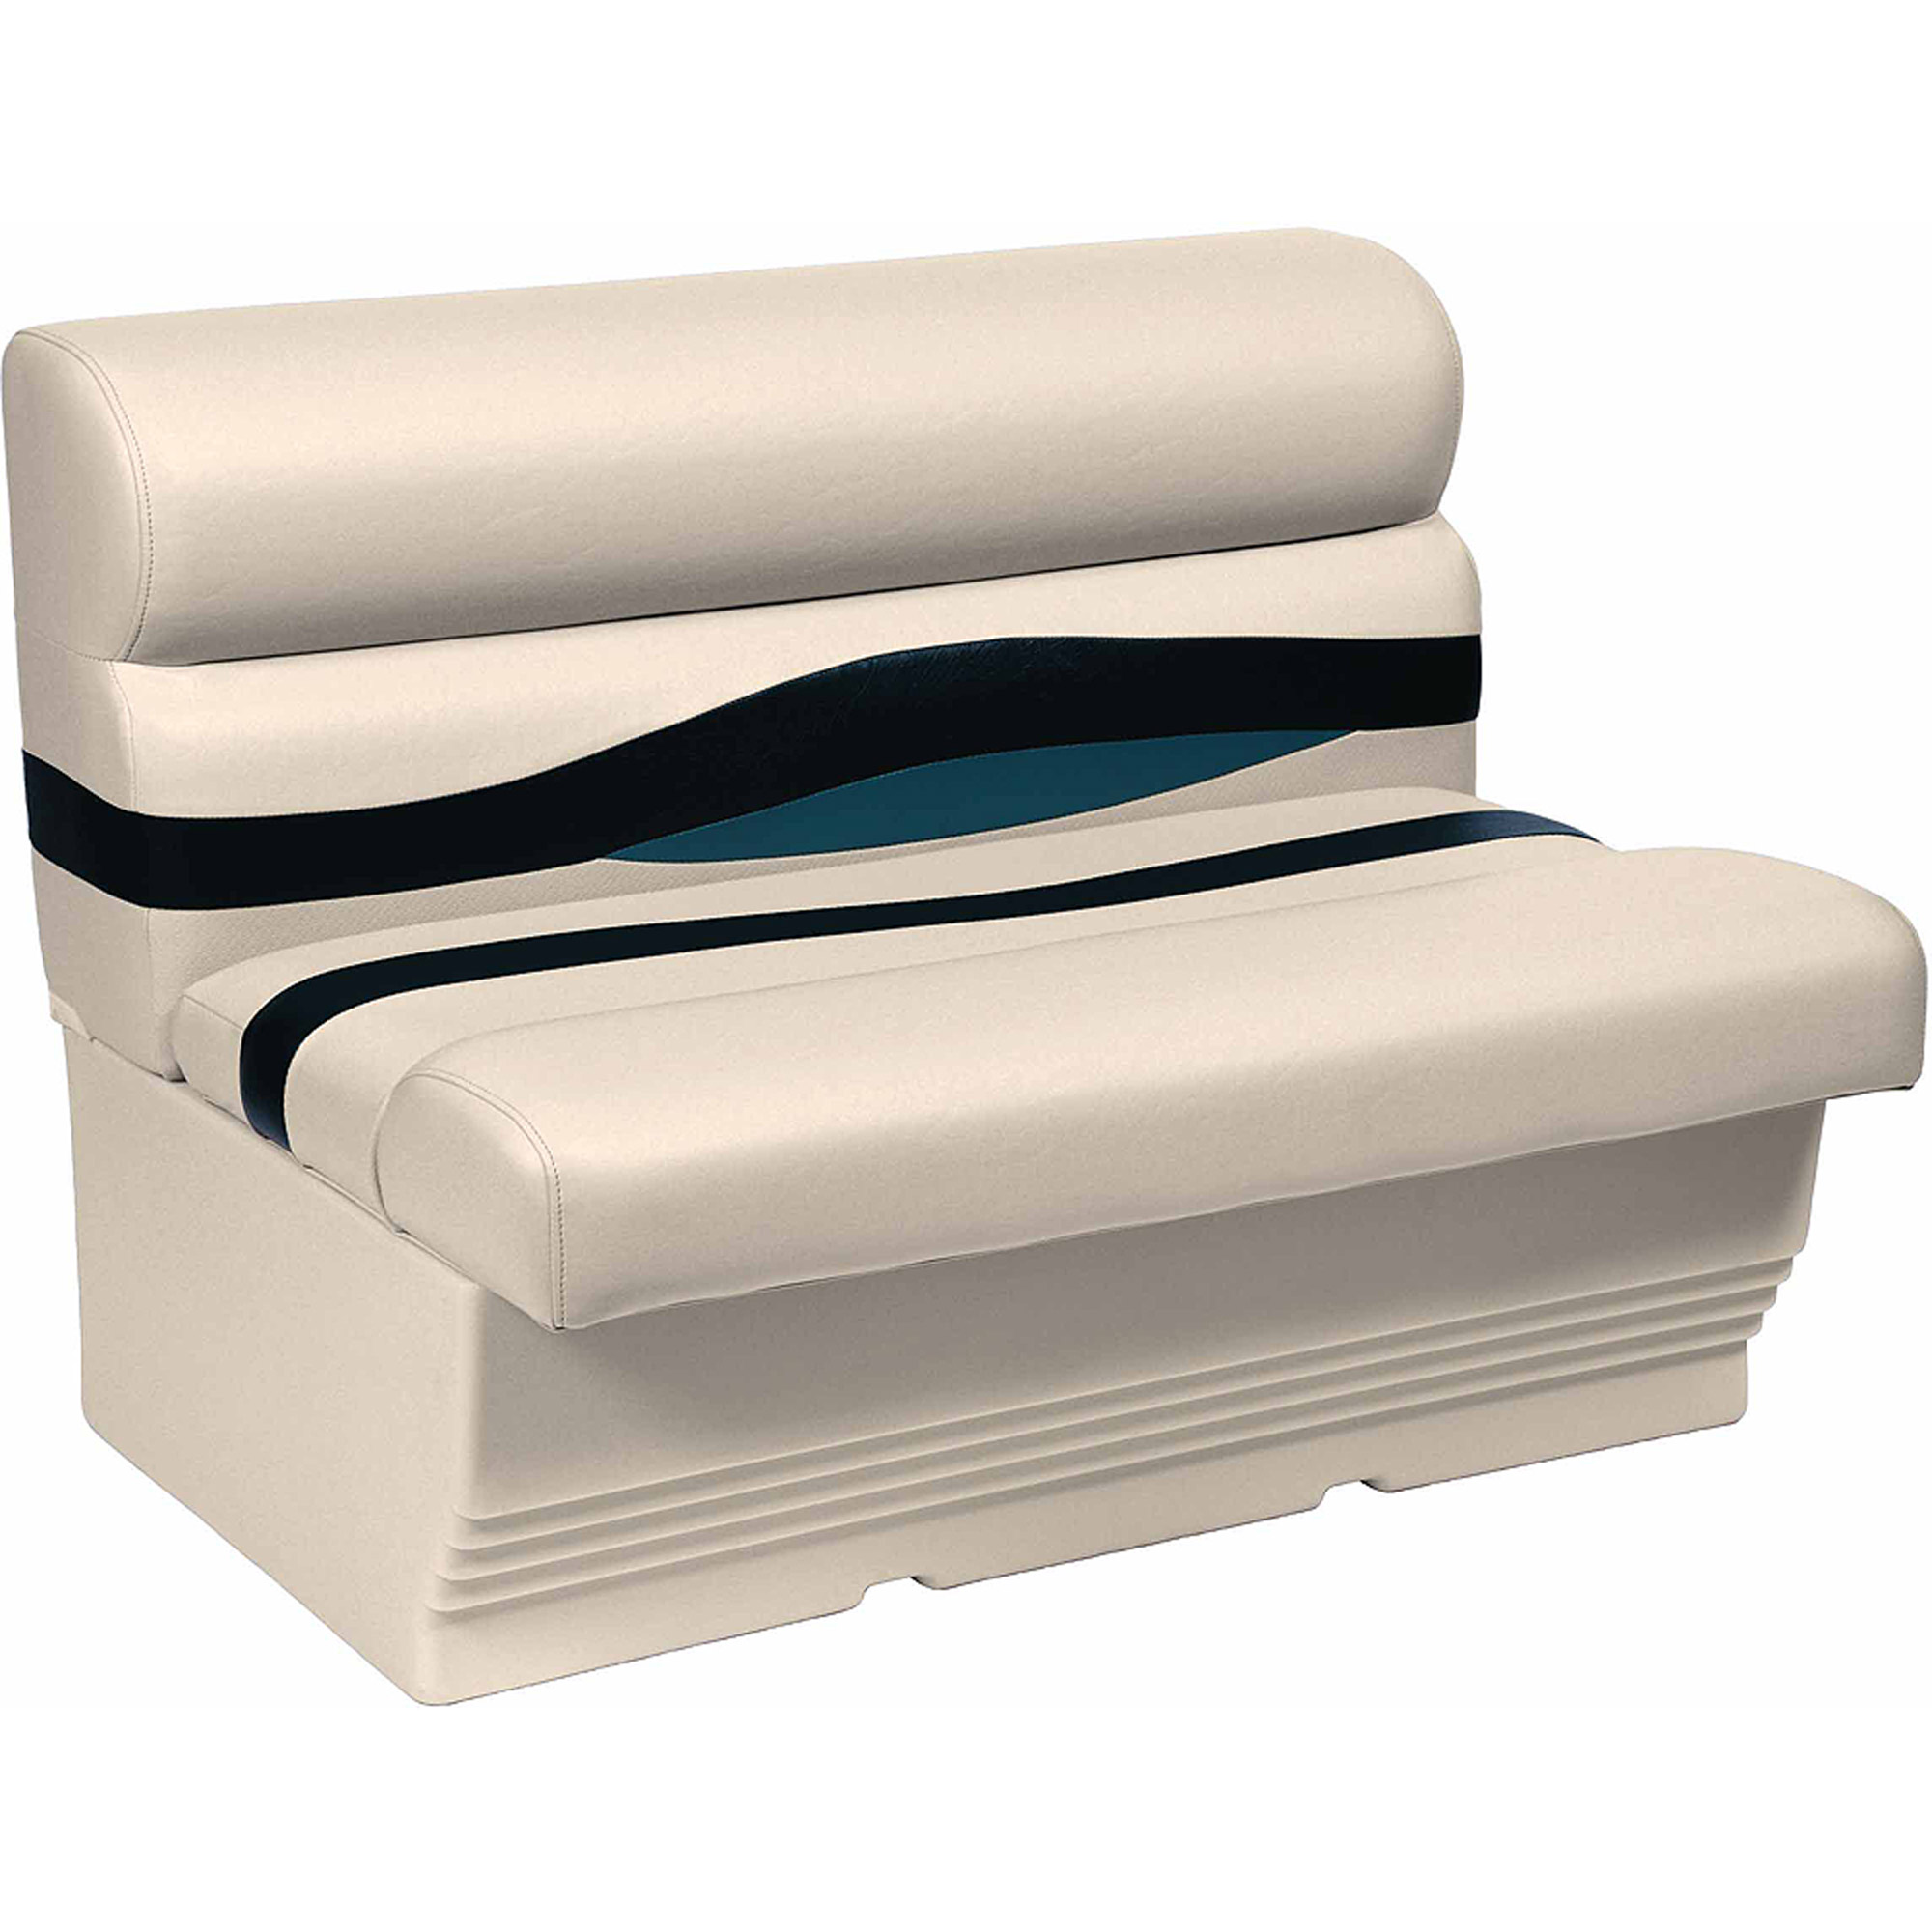 "Wise Premier Series Pontoon 45"" Bench Seat and Base"